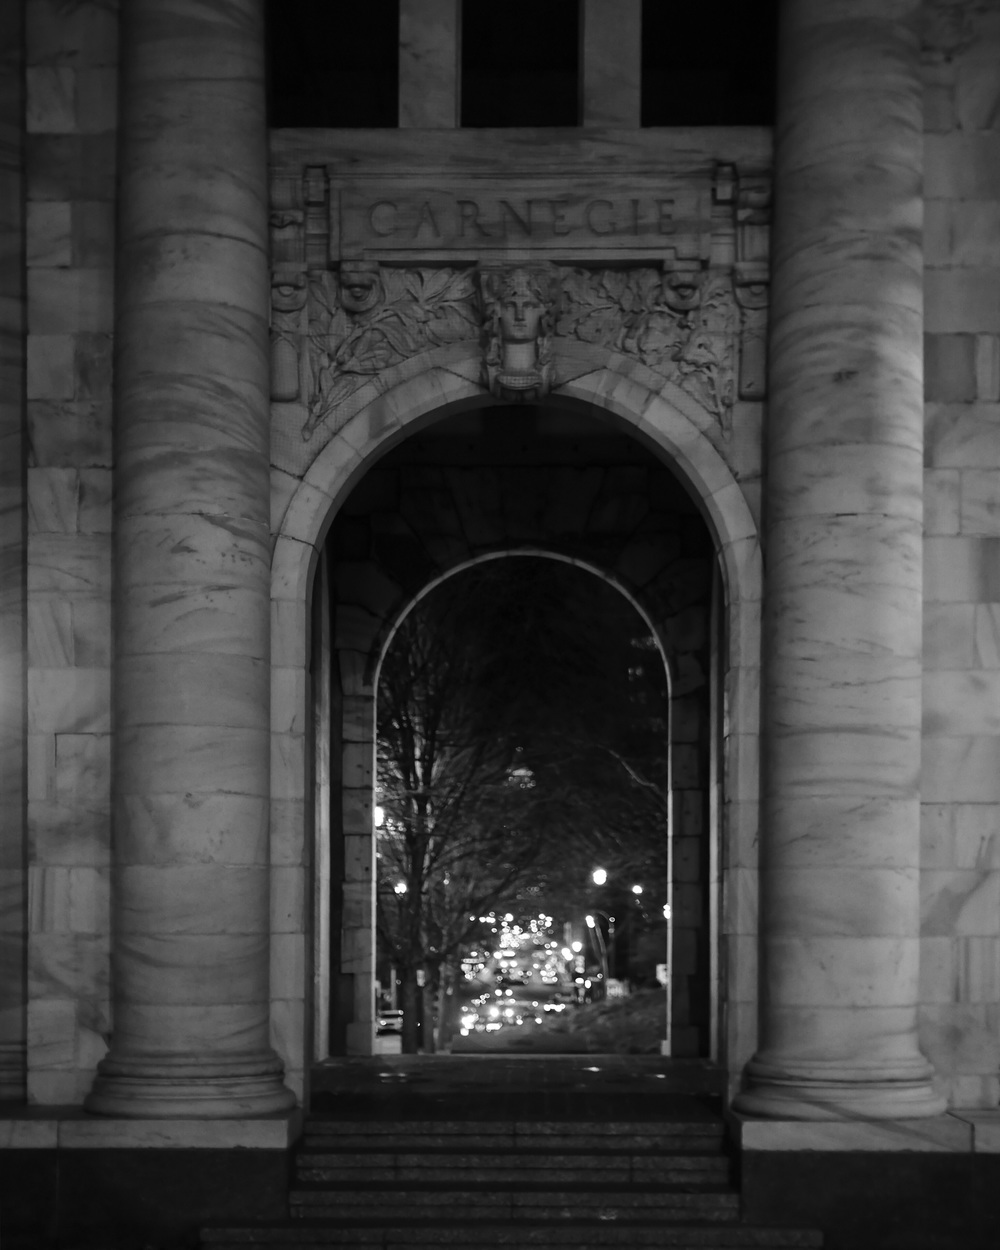 """CARNEGIE""… a cool archway just kind of sitting by the side of the road…"